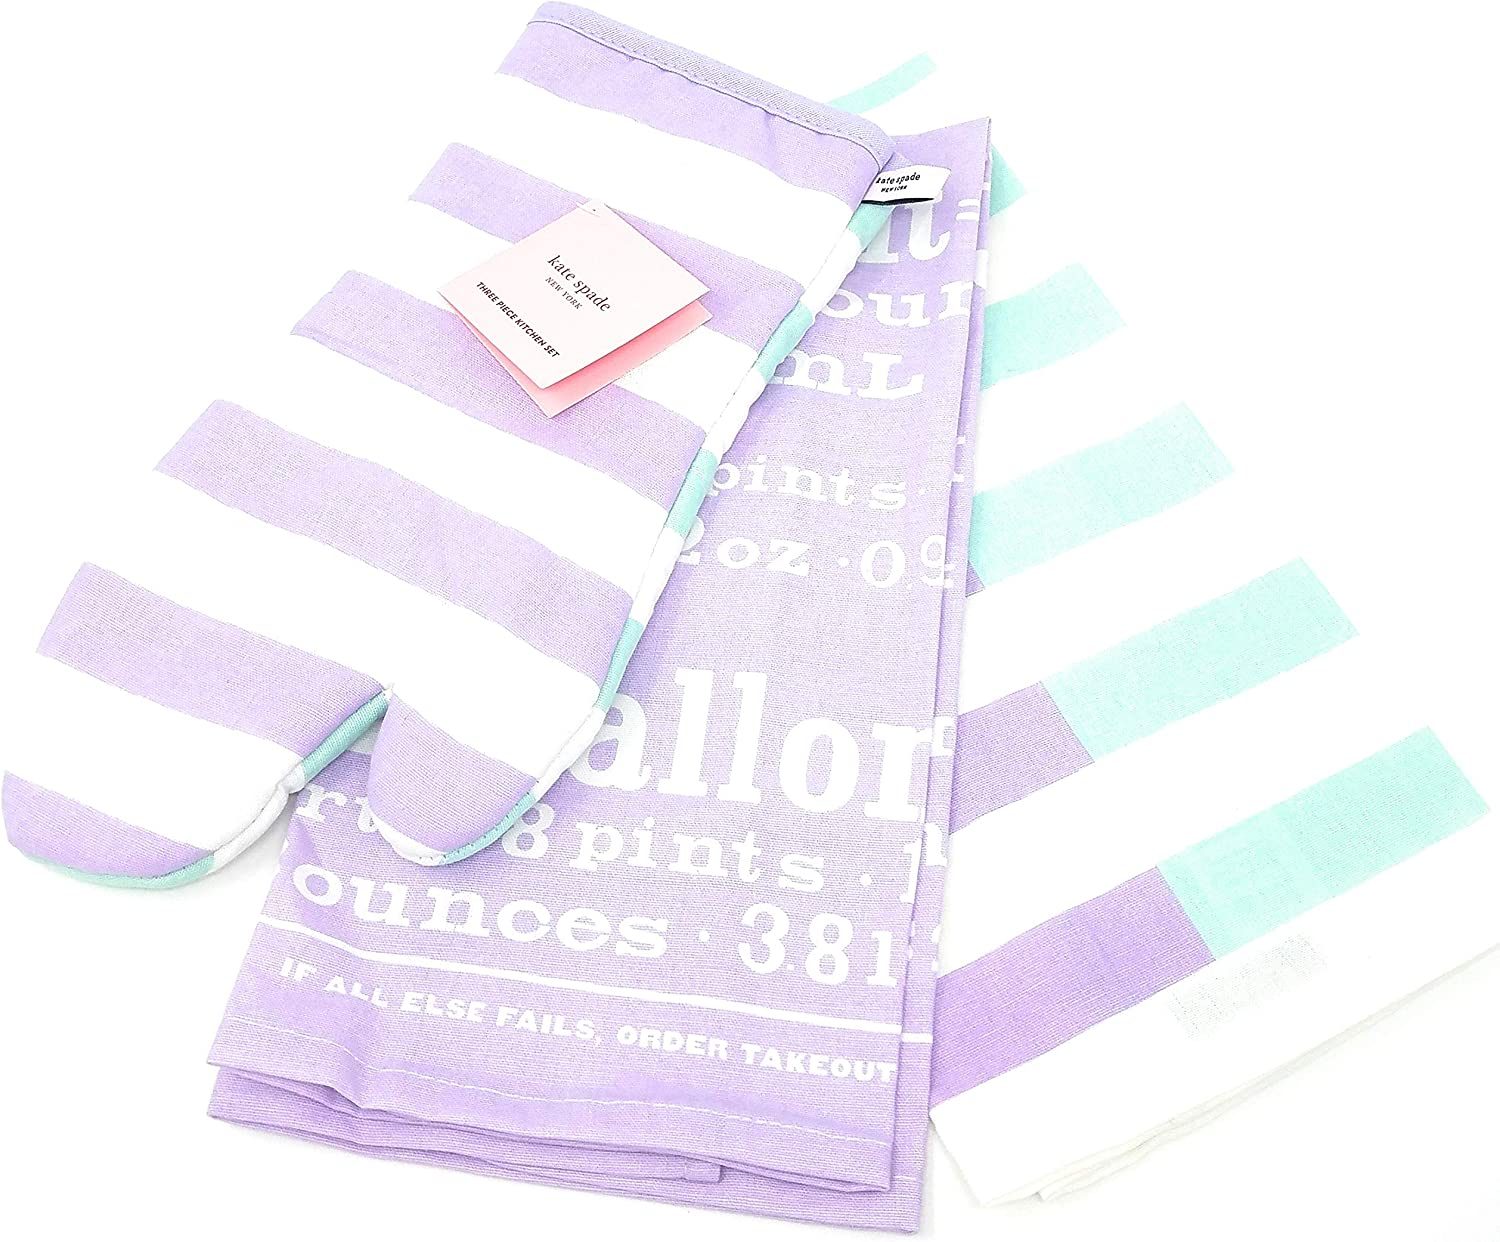 Kate Spade Three Piece Kitchen Set,Oven Mitt/2 Dish Towels (Springtime/Iced Grape)